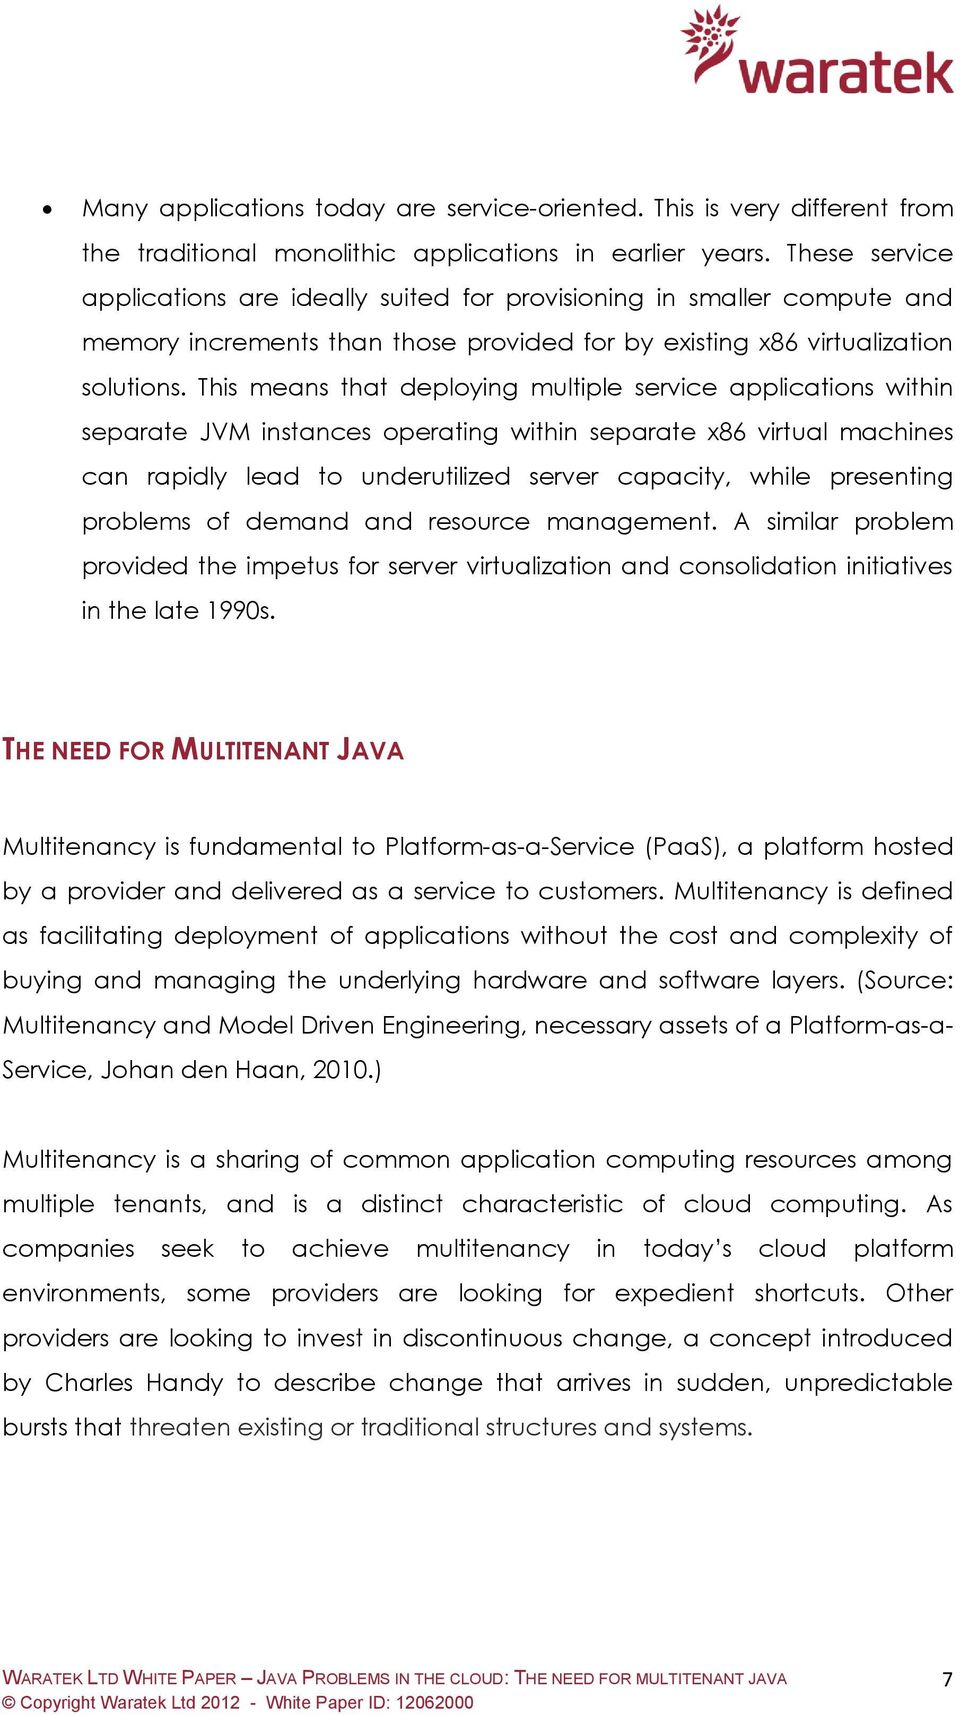 This means that deploying multiple service applications within separate JVM instances operating within separate x86 virtual machines can rapidly lead to underutilized server capacity, while